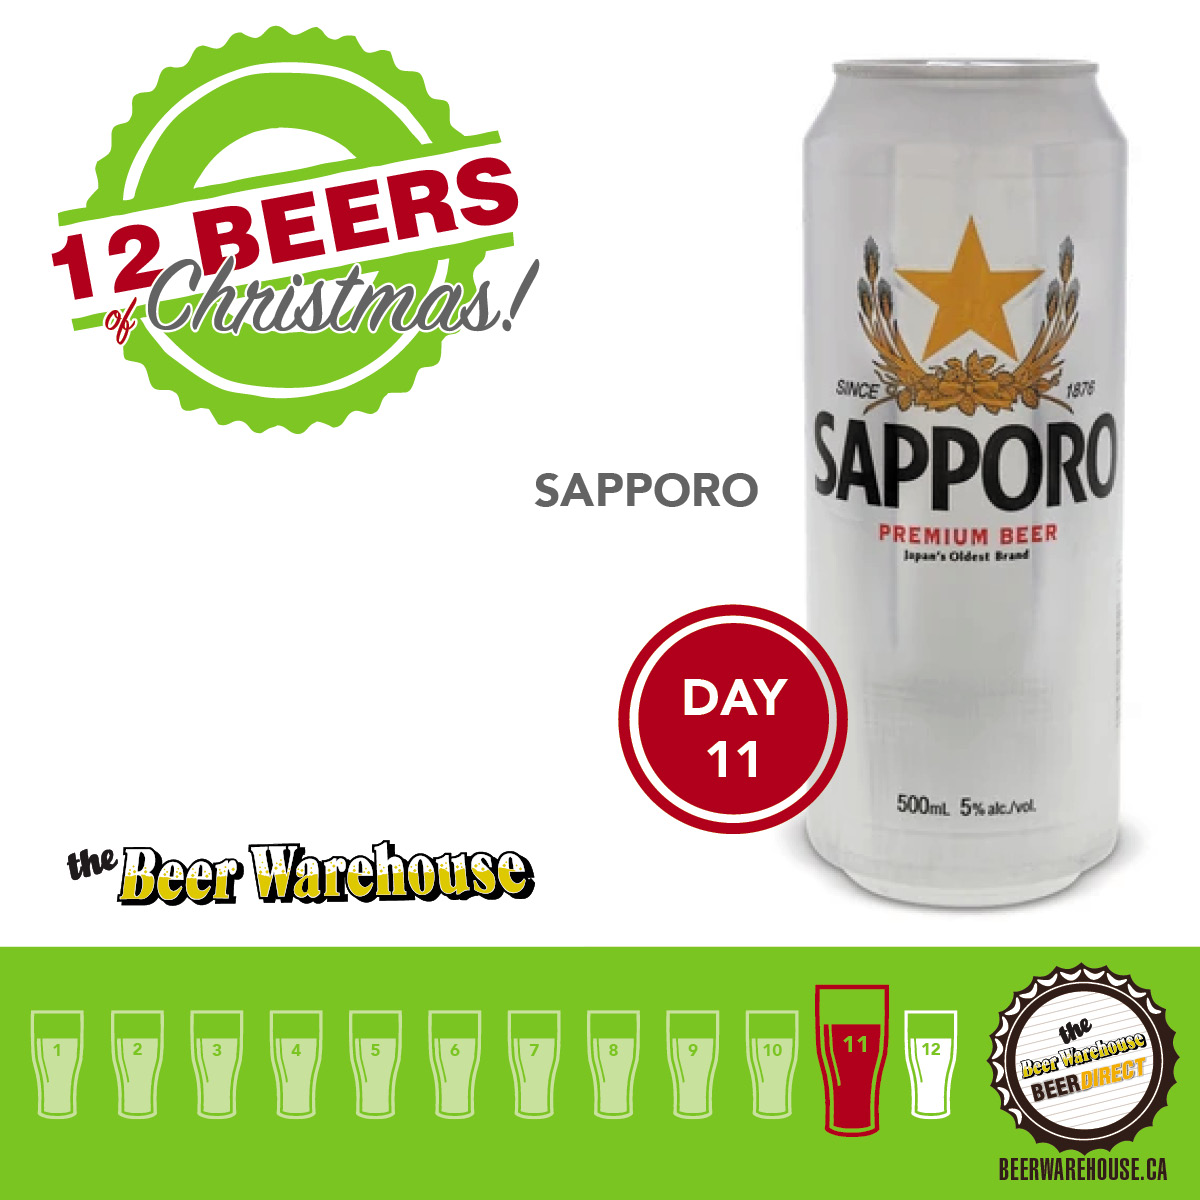 On the eleventh day... try the original. The icon. Sapporo Premium Beer is a refreshing lager with a crisp, refined flavor and a clean finish. https://t.co/AJlKOiBl8n https://t.co/yyKoGWx5Va